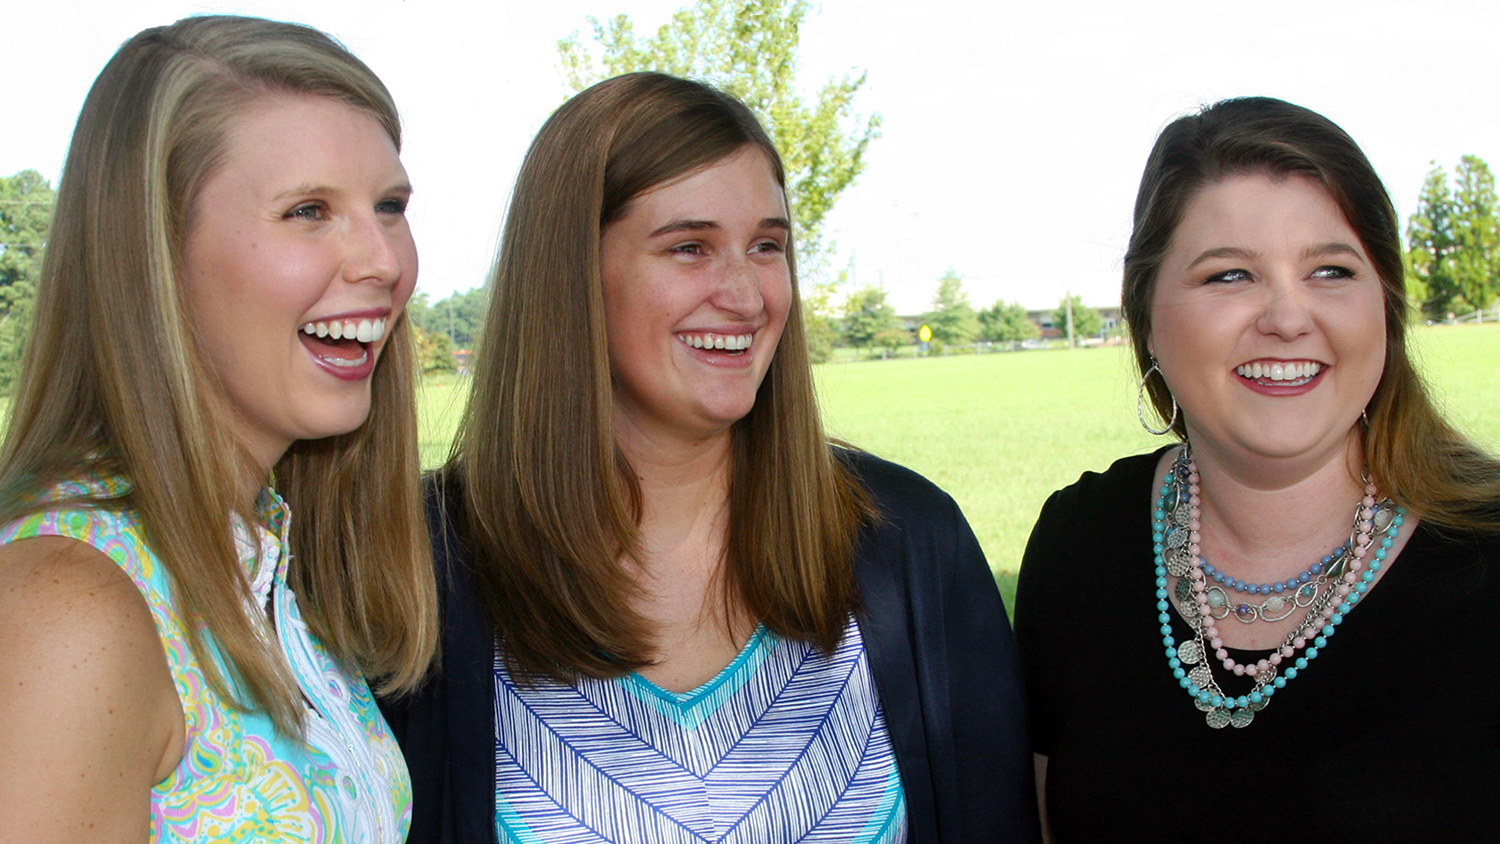 Lee County Extension's Women in Ag highlights Taylor Craig, Katelyn Thomas and Morgan